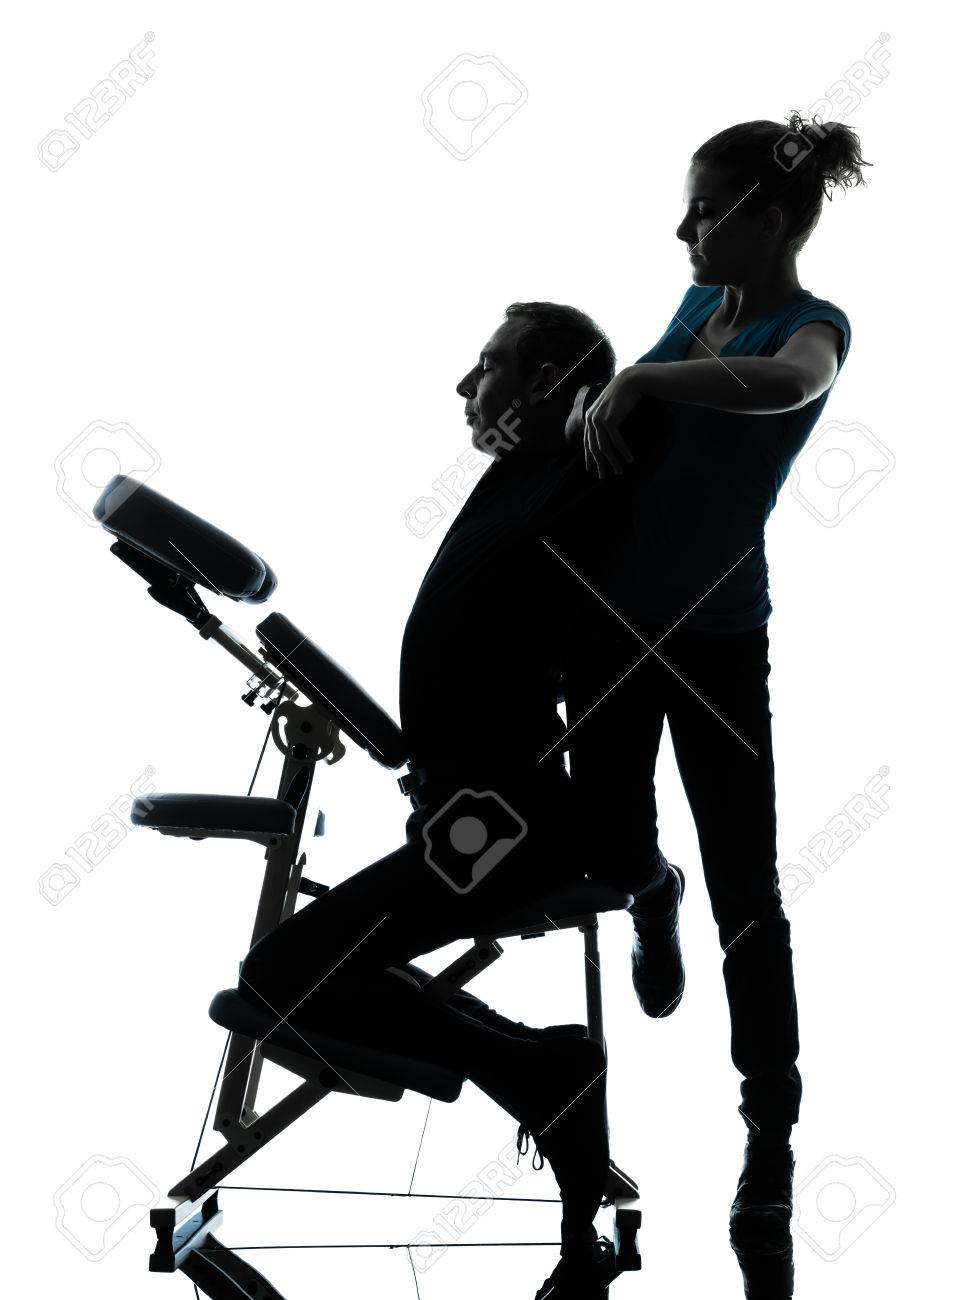 Chair massage therapy - One Man And Woman Performing Chair Back Massage In Silhouette Studio On White Background Stock Photo